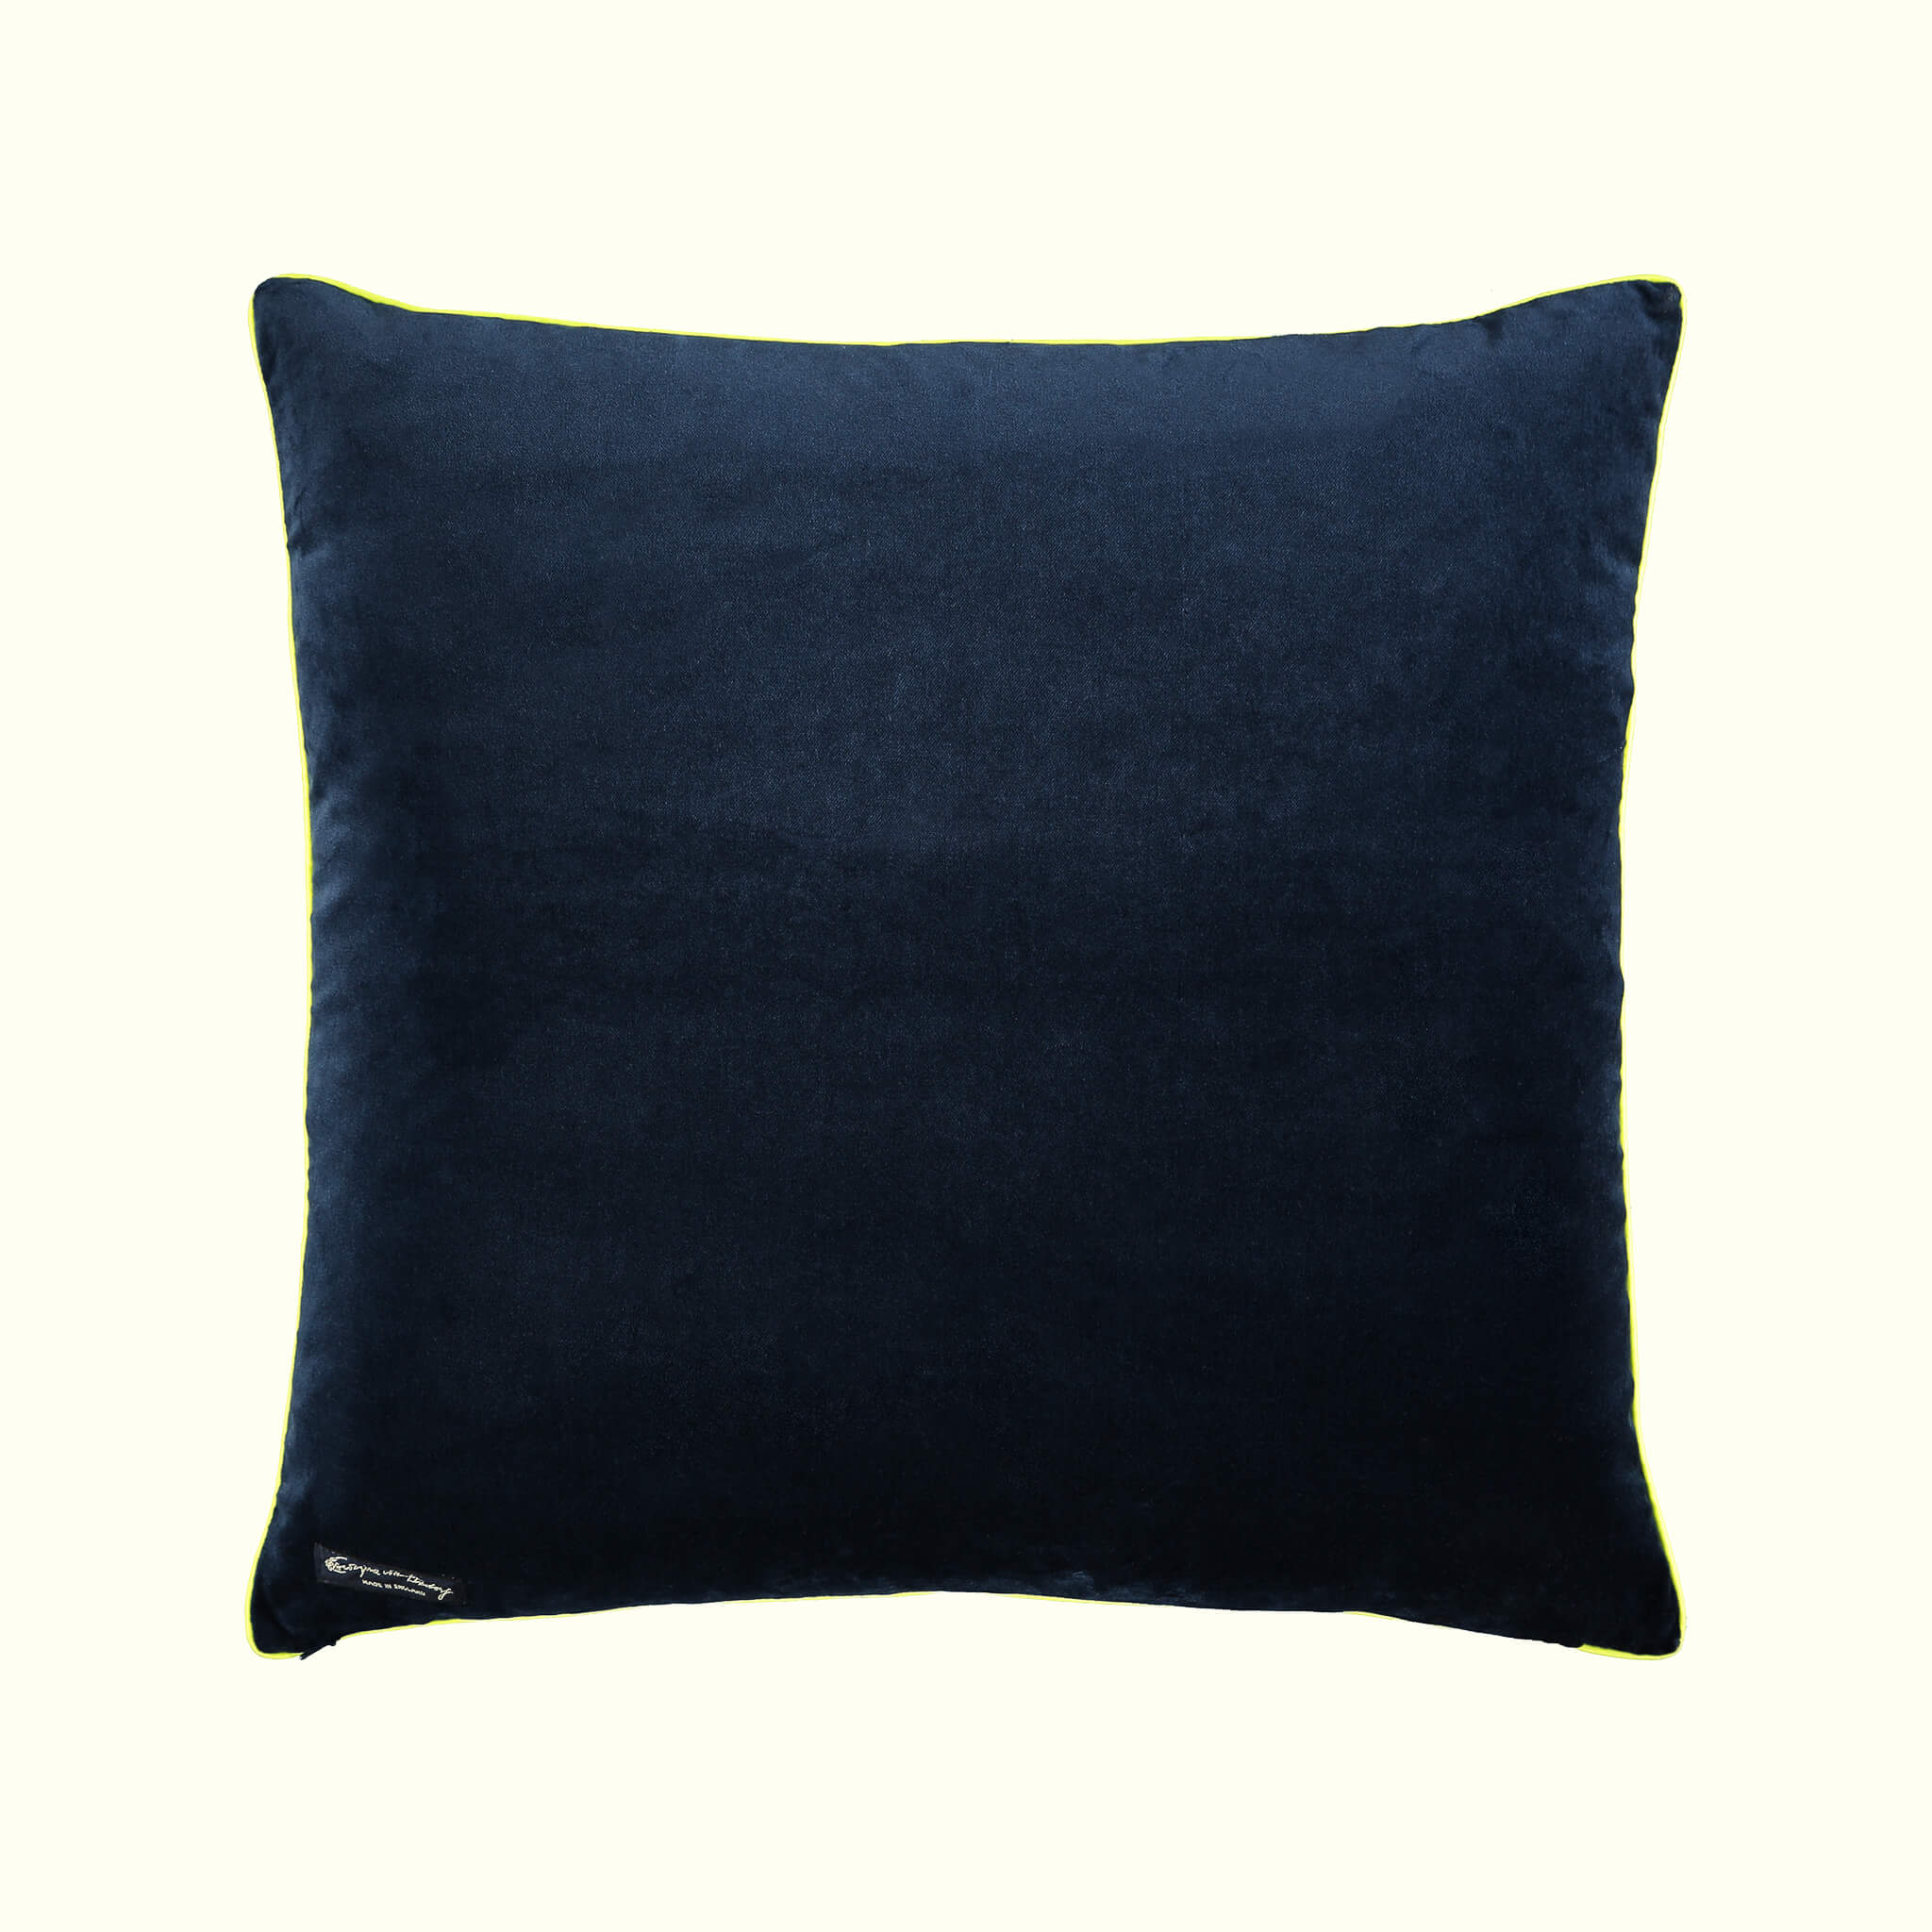 A luxury British silk velvet cushion by GVE in navy and gold Aurora print design.